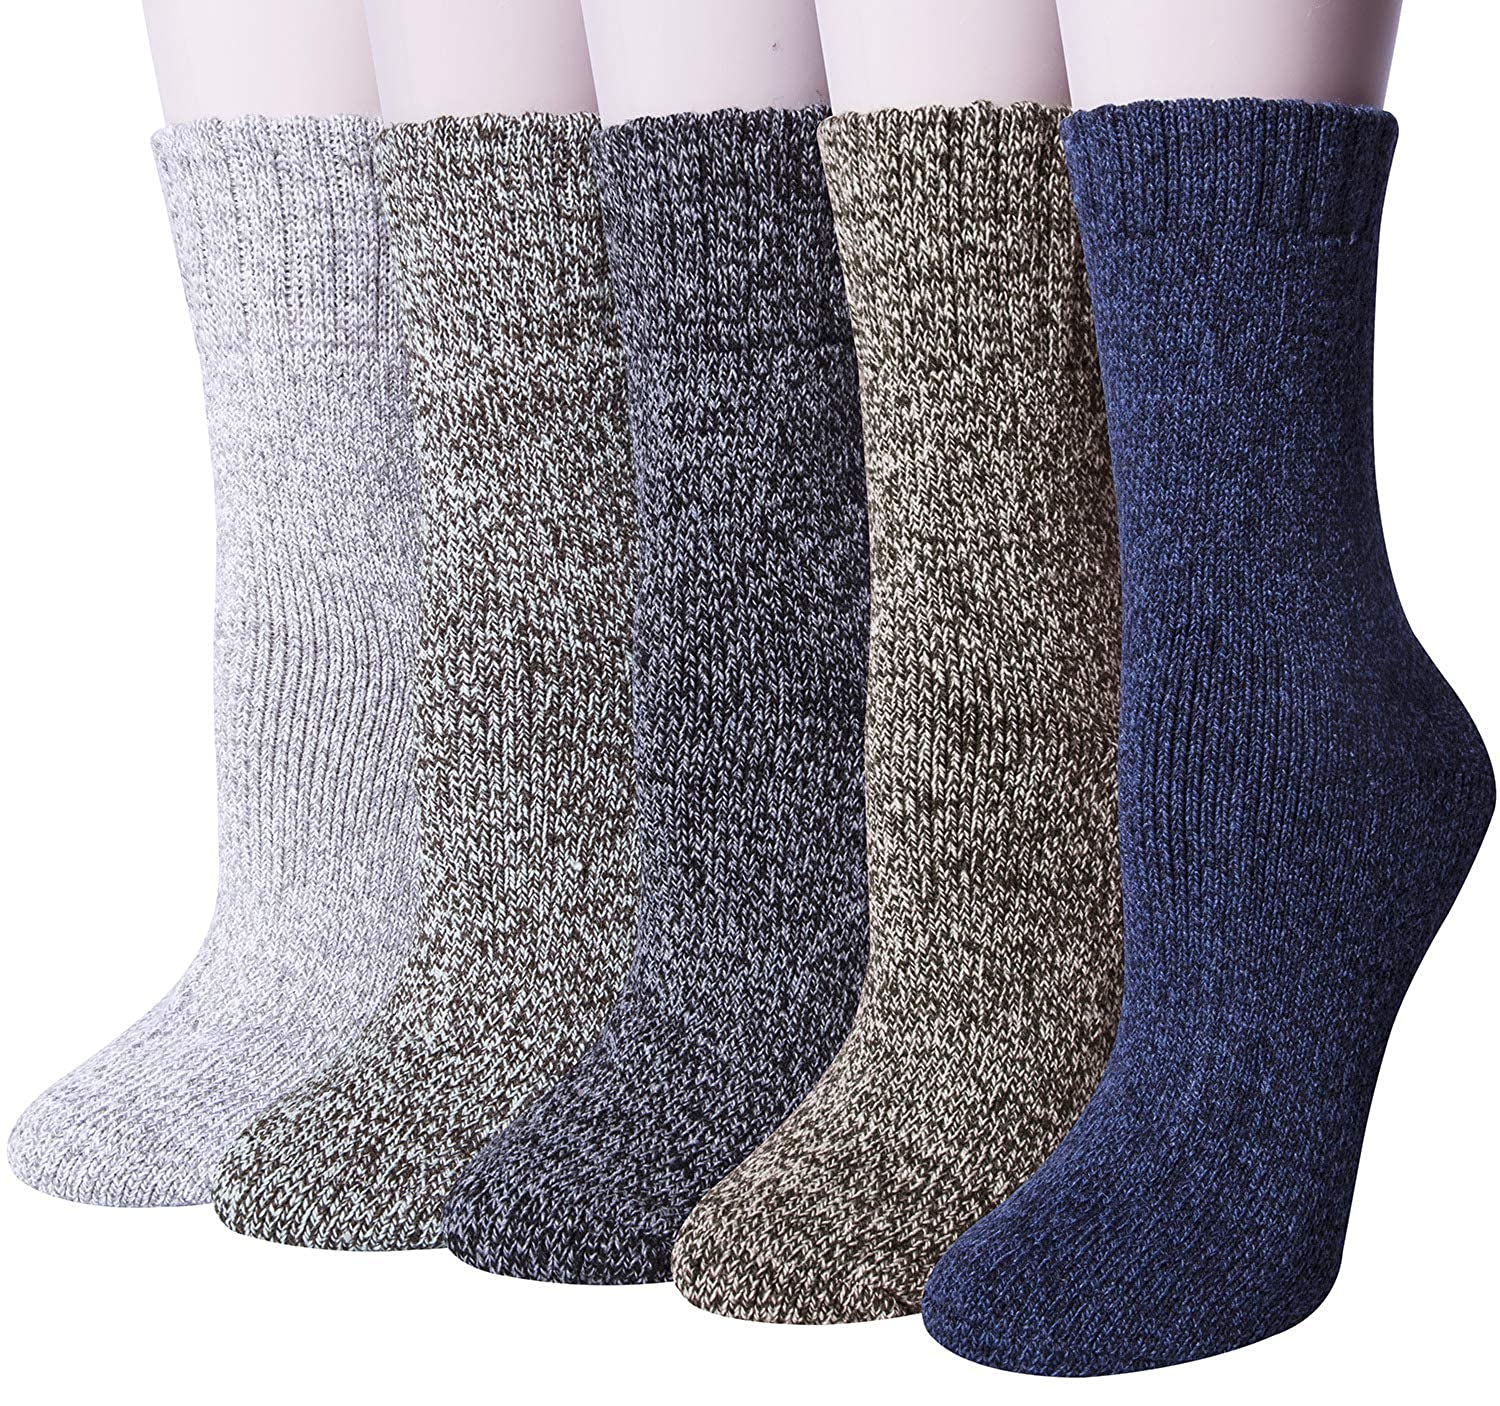 [UPGRADED]5 Pairs Womens Winter Super Soft Thick Warm Wool Knitting Casual Crew Socks 28-WS-1